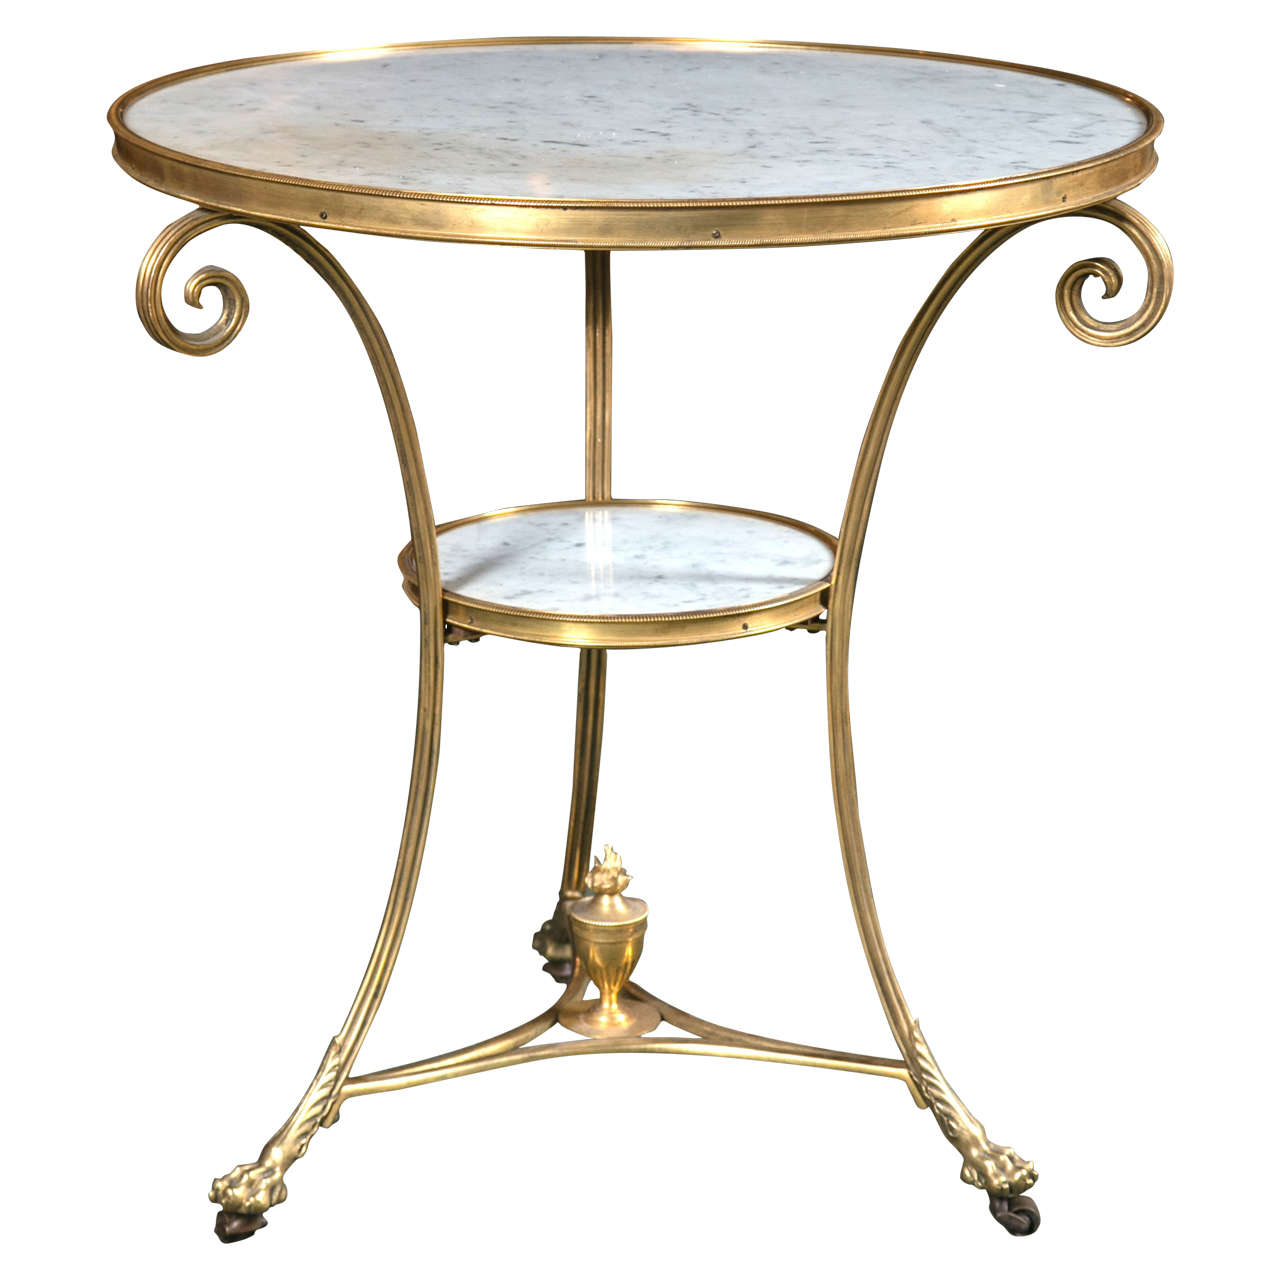 French charles x style gueridon table at 1stdibs for Table gueridon